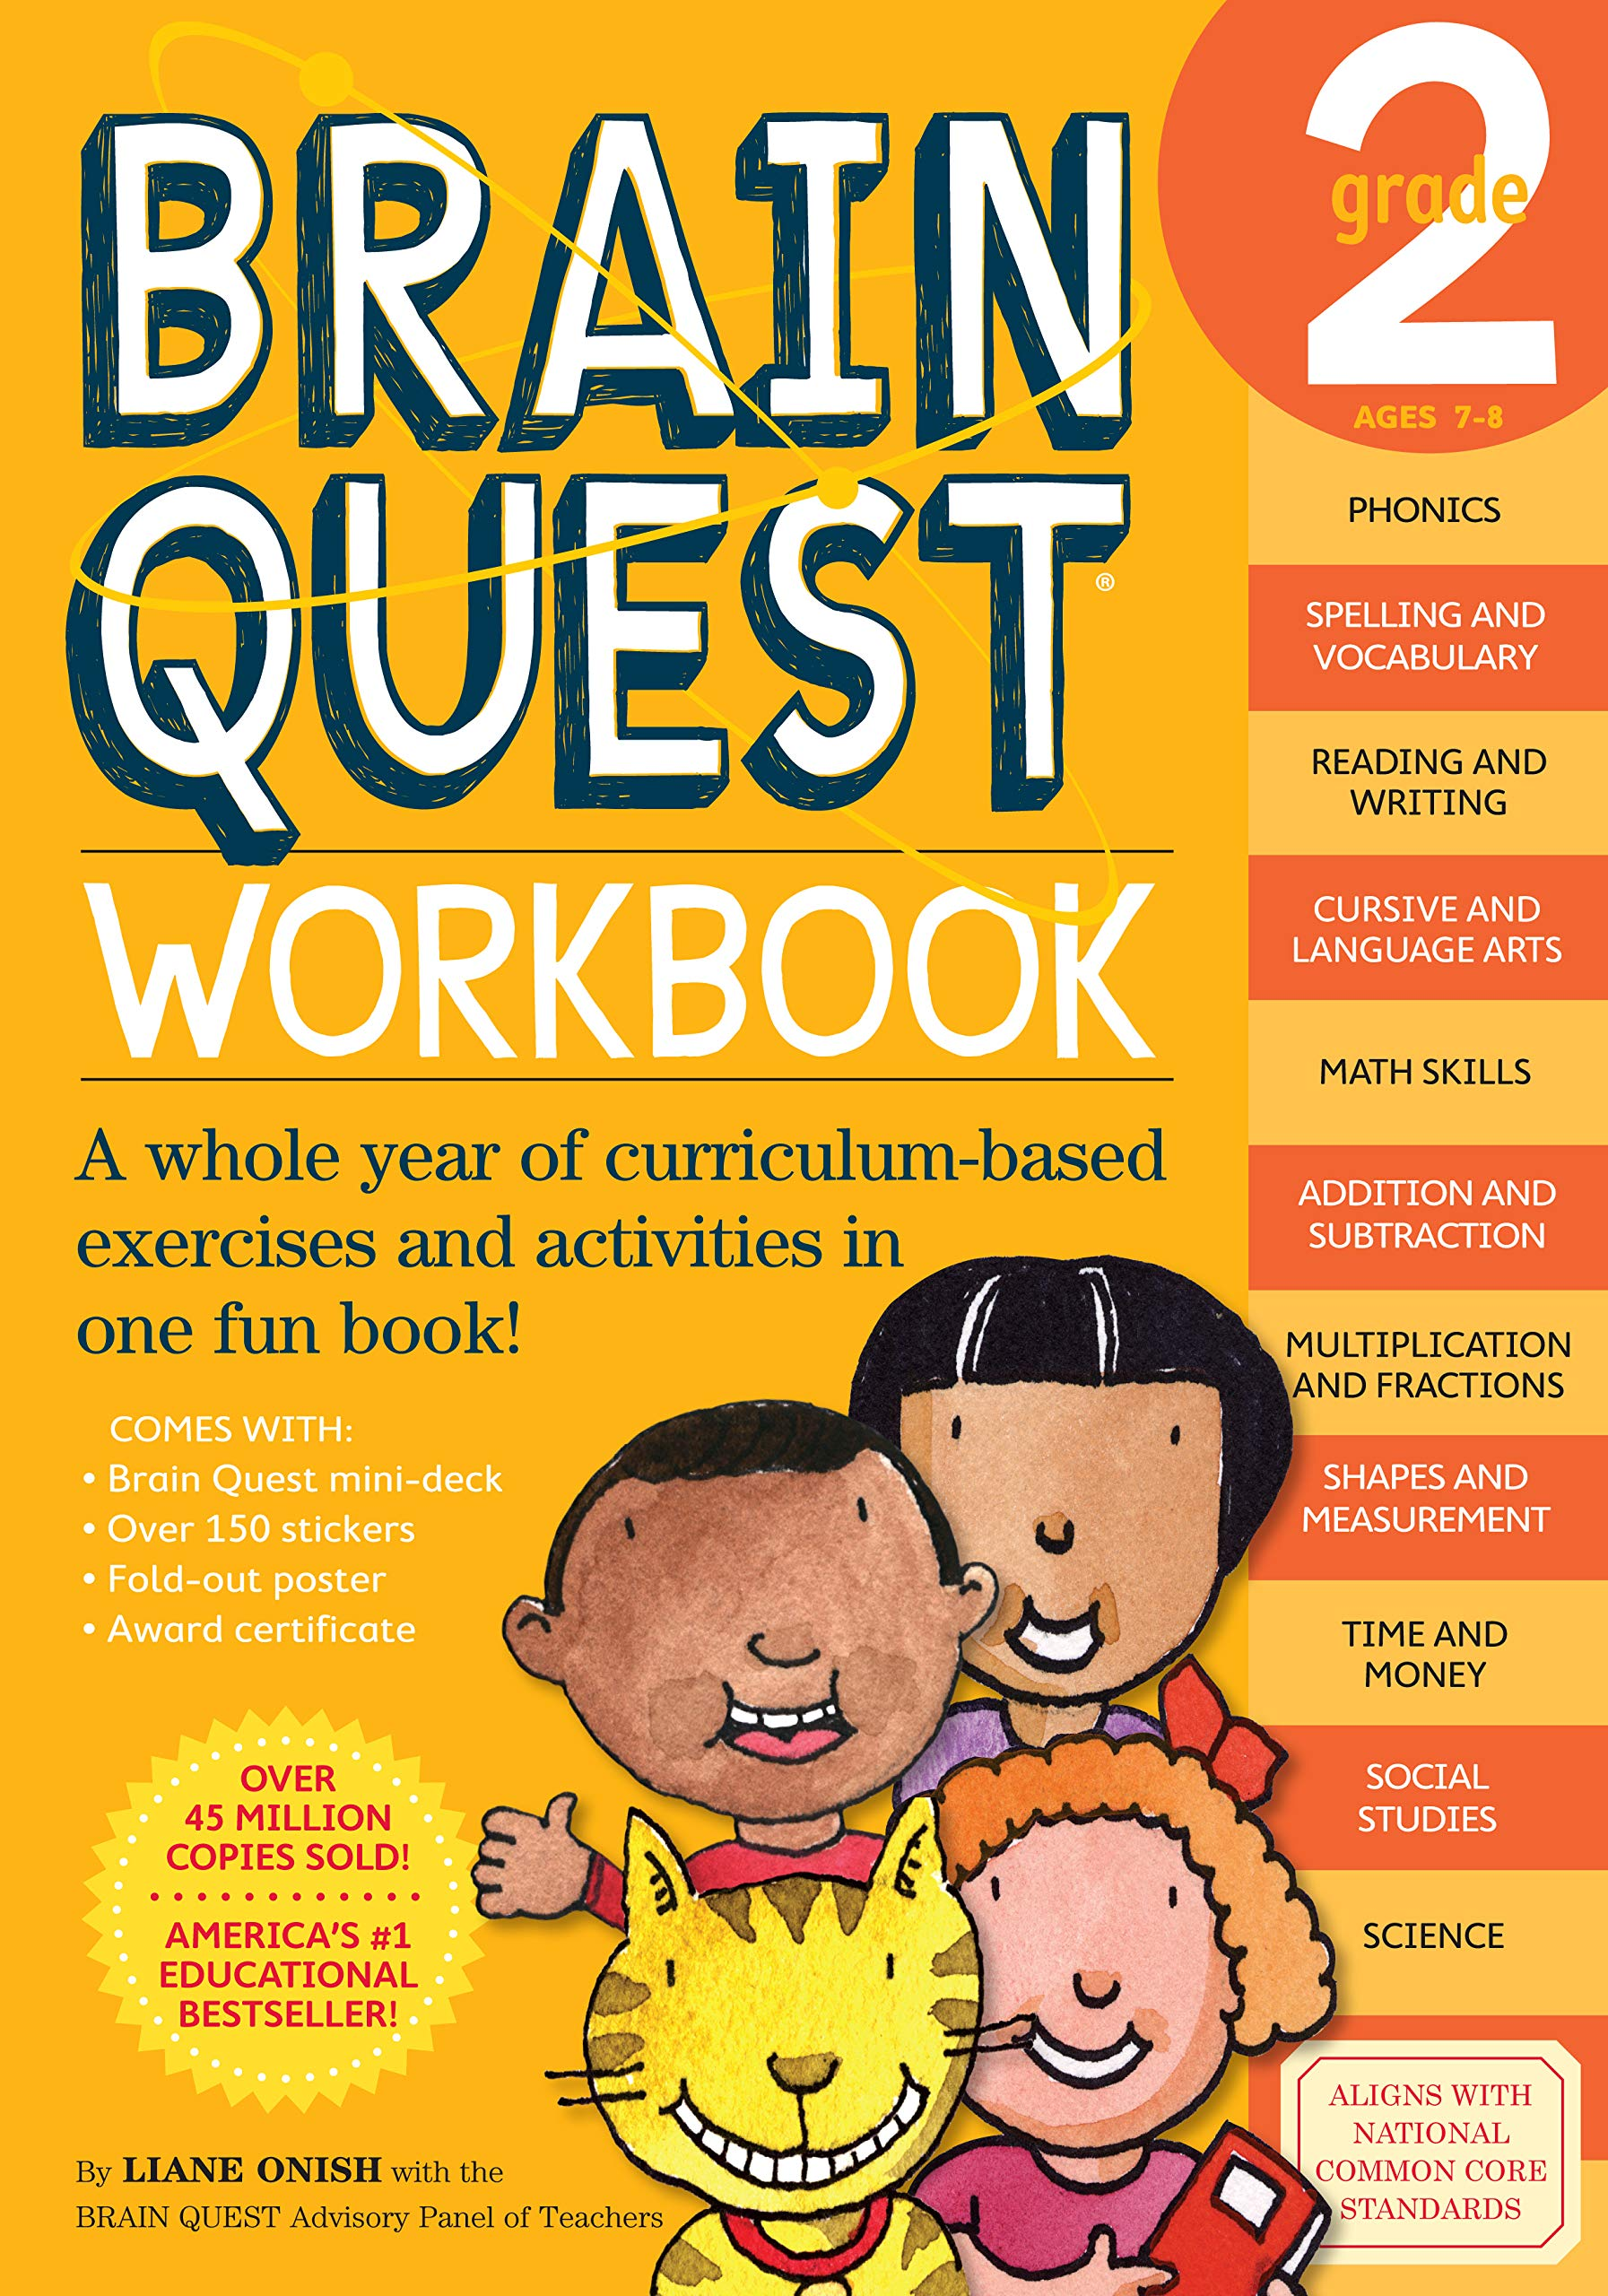 hight resolution of Brain Quest Workbook: Grade 2 - A2Z Science \u0026 Learning Toy Store